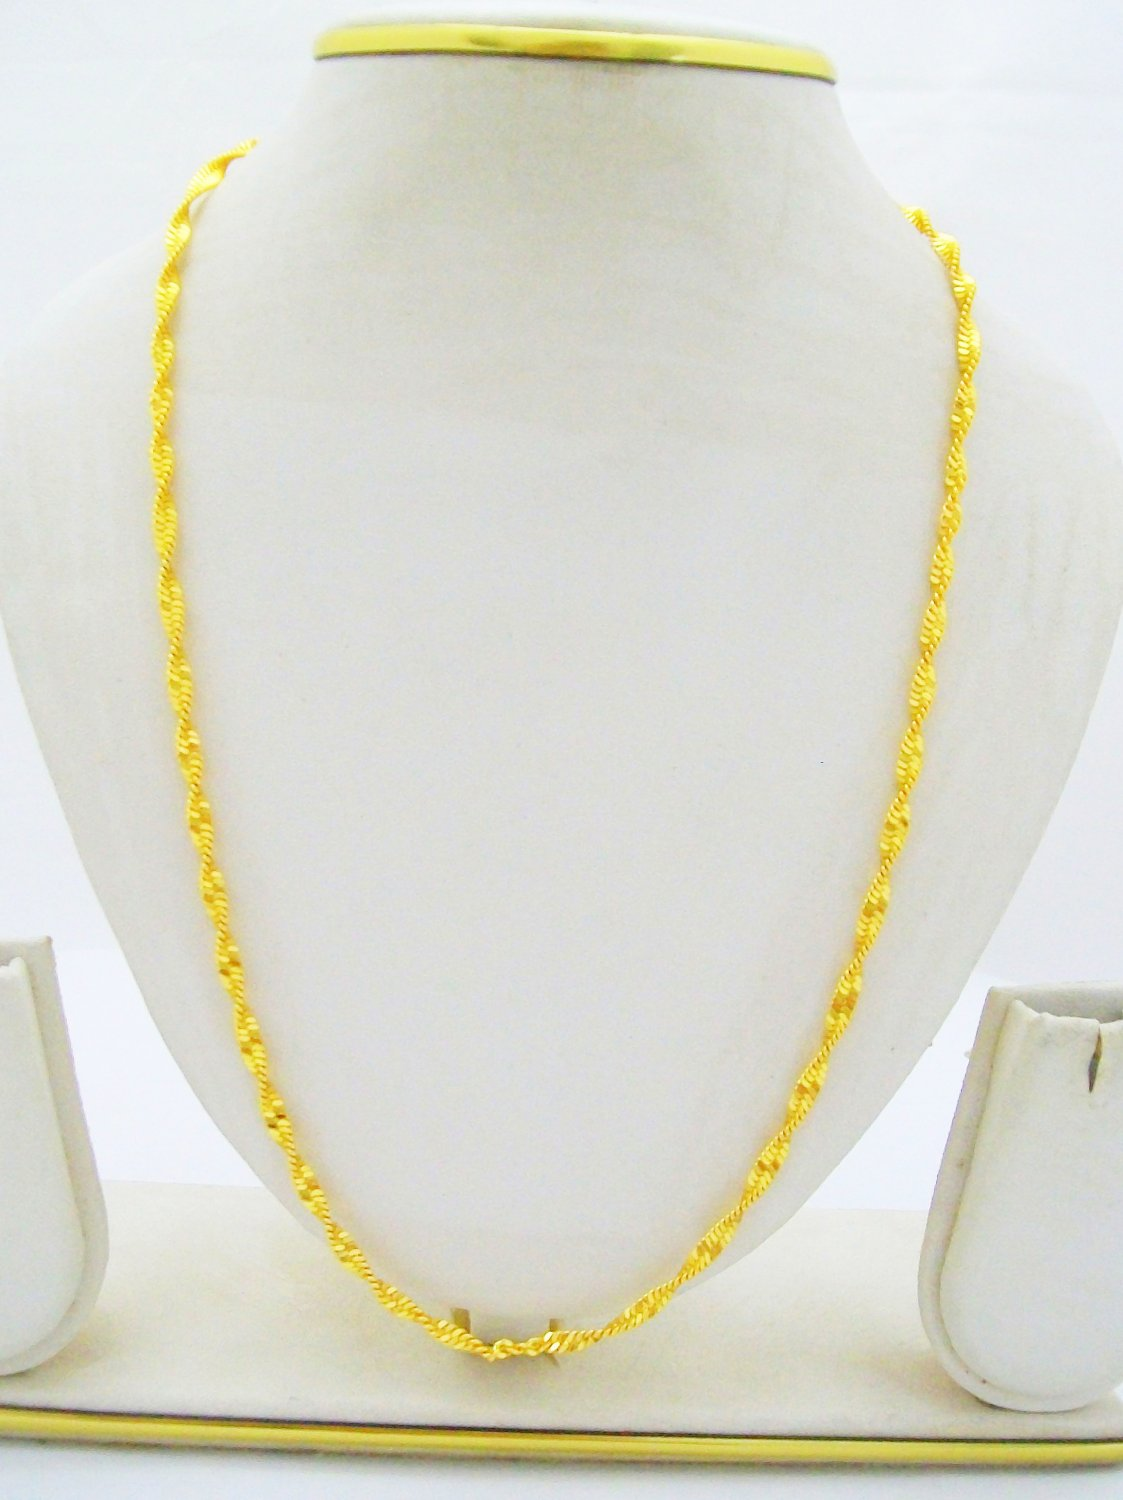 24K Gold Plated Twisted Disco Chain Necklace 22 Inches